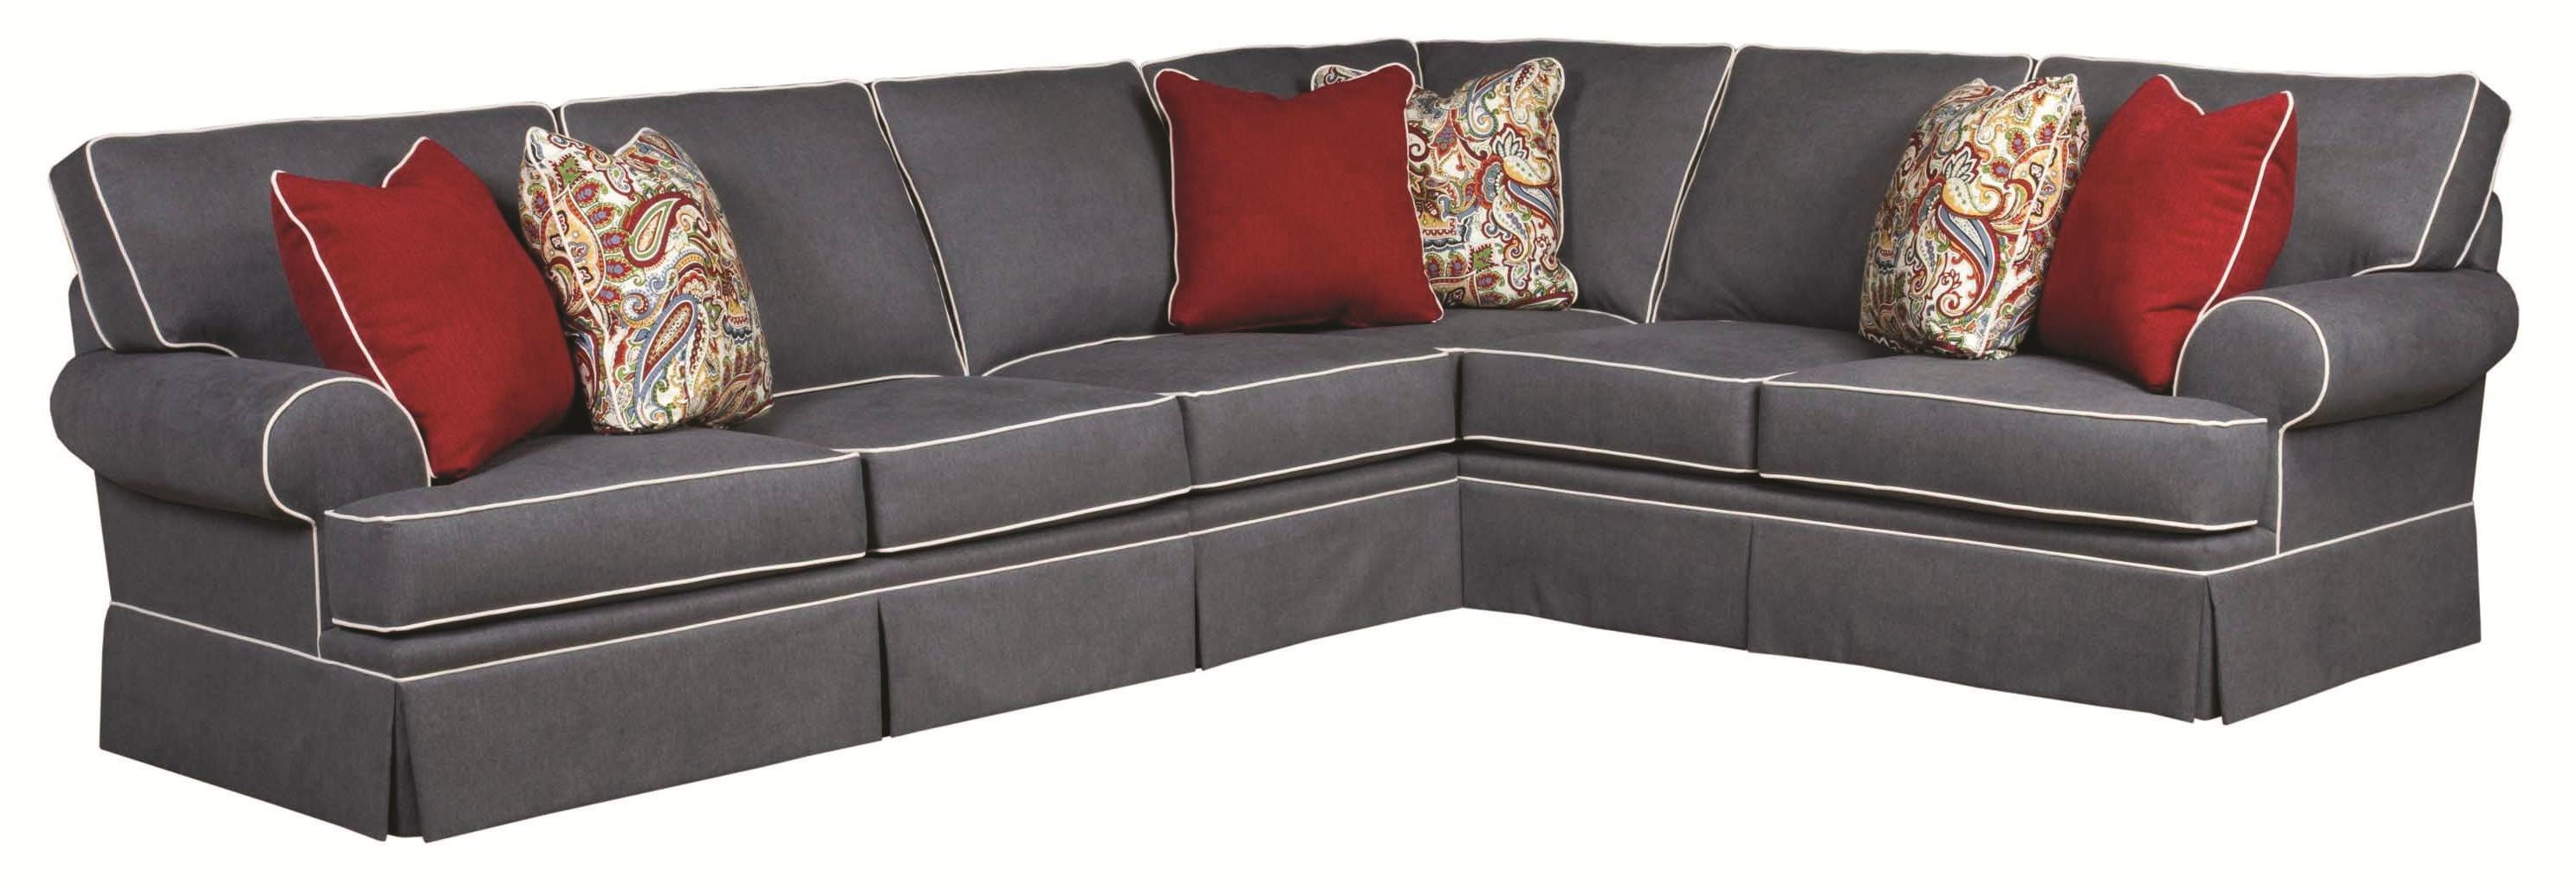 Broyhill Furniture Emily Traditional 3 Piece Sectional Sofa With In Broyhill Emily Sofas (Image 13 of 20)